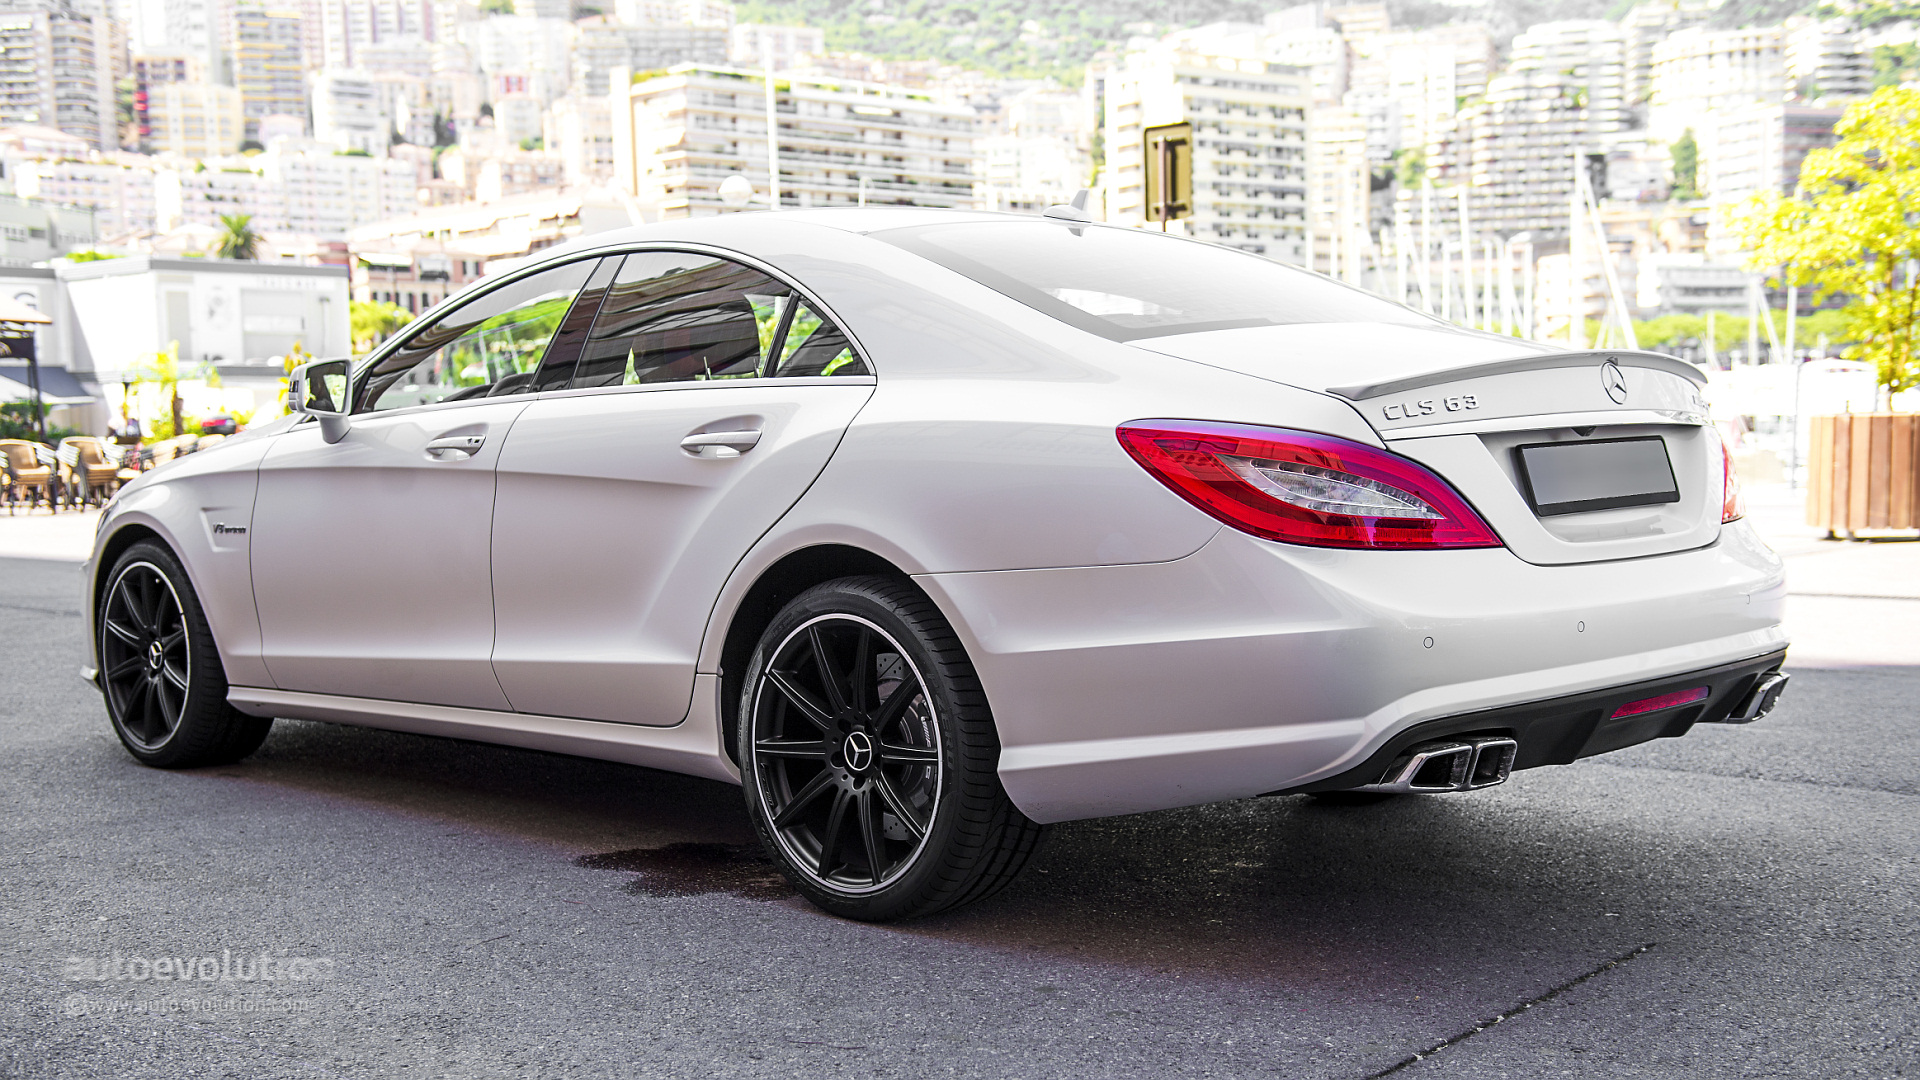 mercedes benz cls 63 amg 4matic tested by autoevolution autoevolution. Black Bedroom Furniture Sets. Home Design Ideas